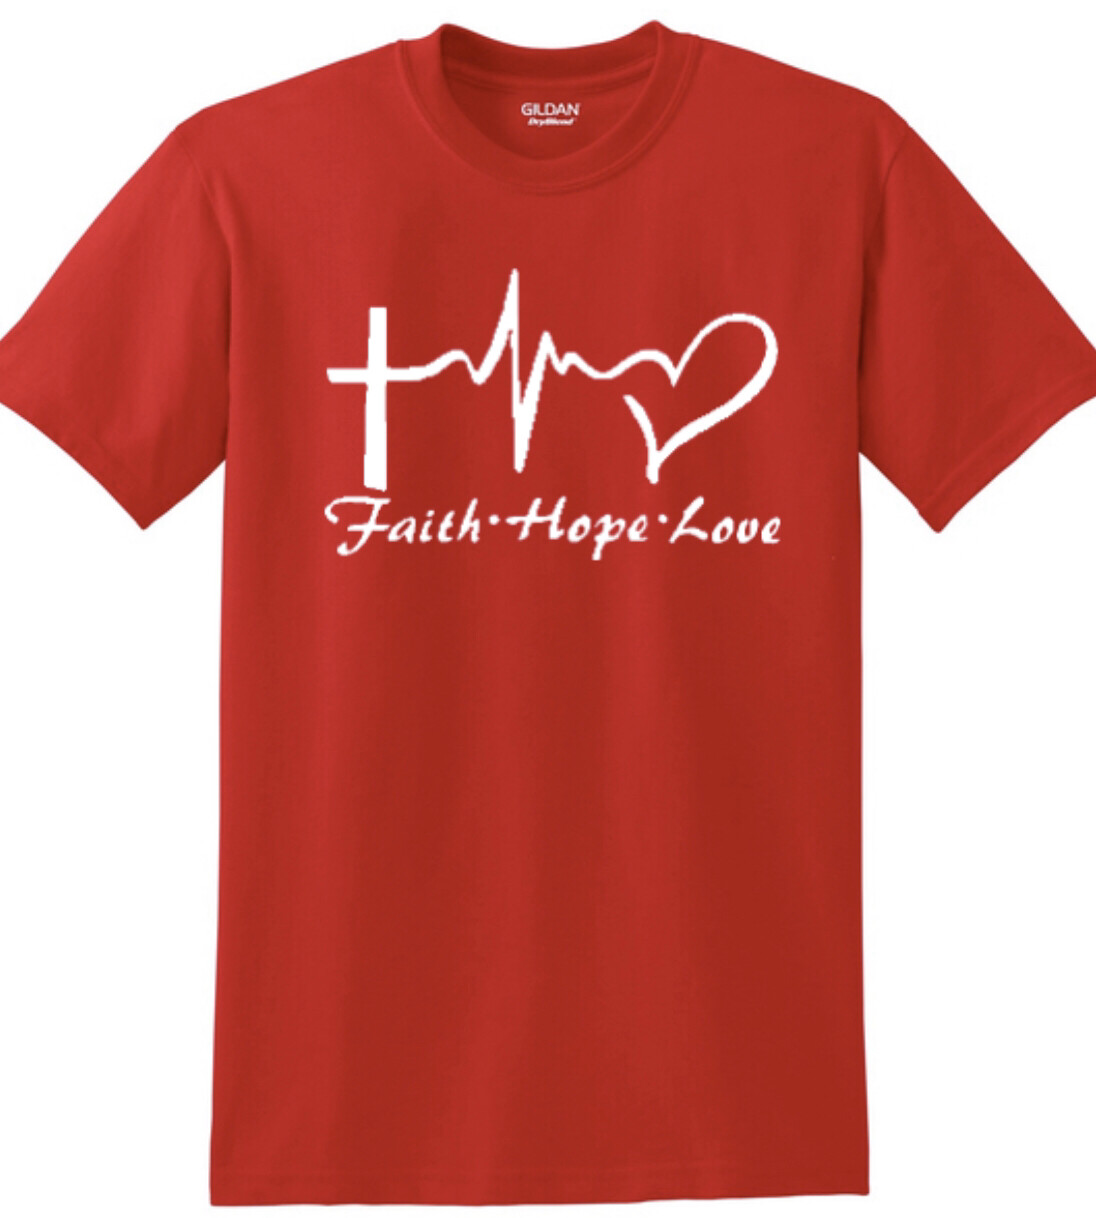 Faith Hope Love tee to benefit Jamie's Vision